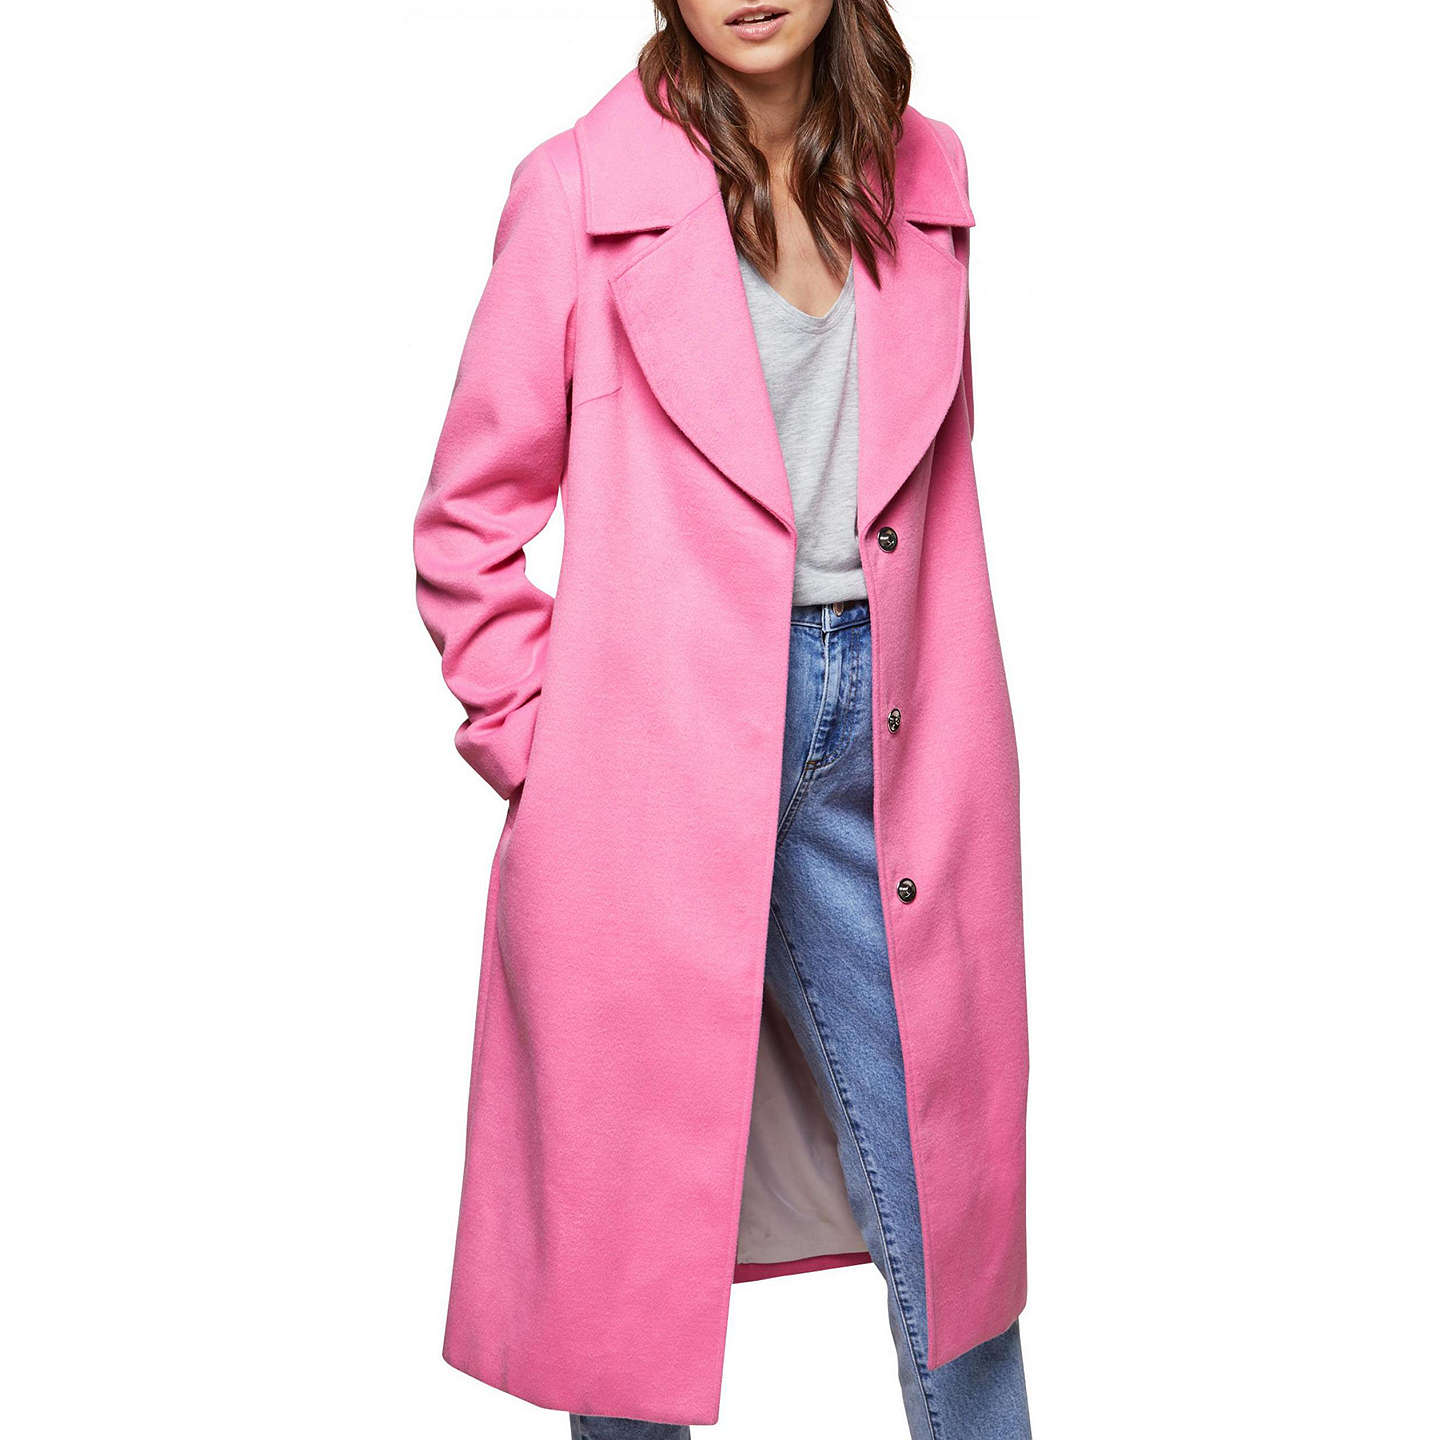 BuyMiss Selfridge Midi Coat, Pink, 6 Online at johnlewis.com